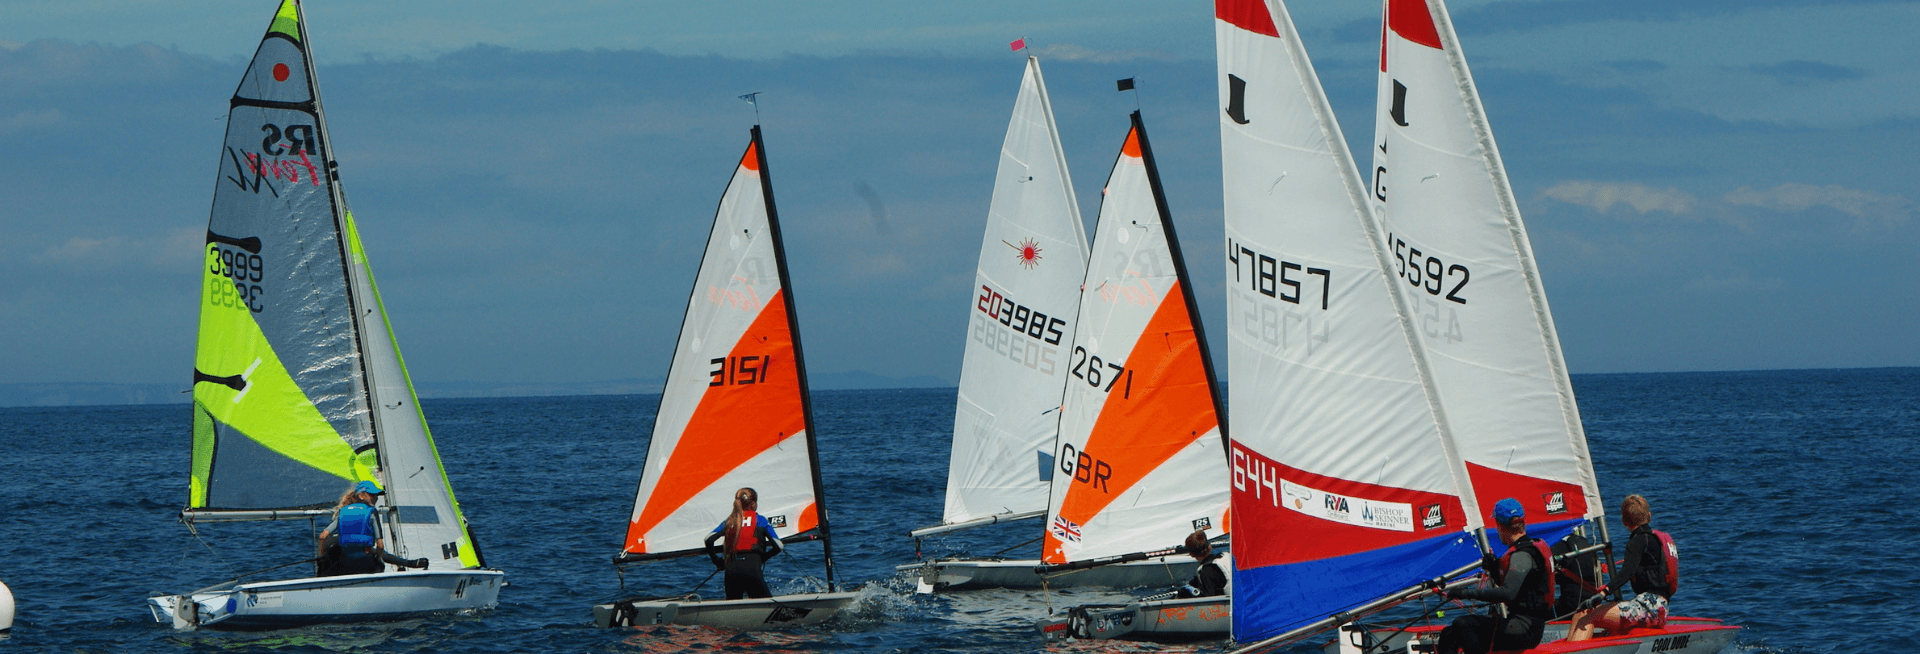 sailing instructions for beginners